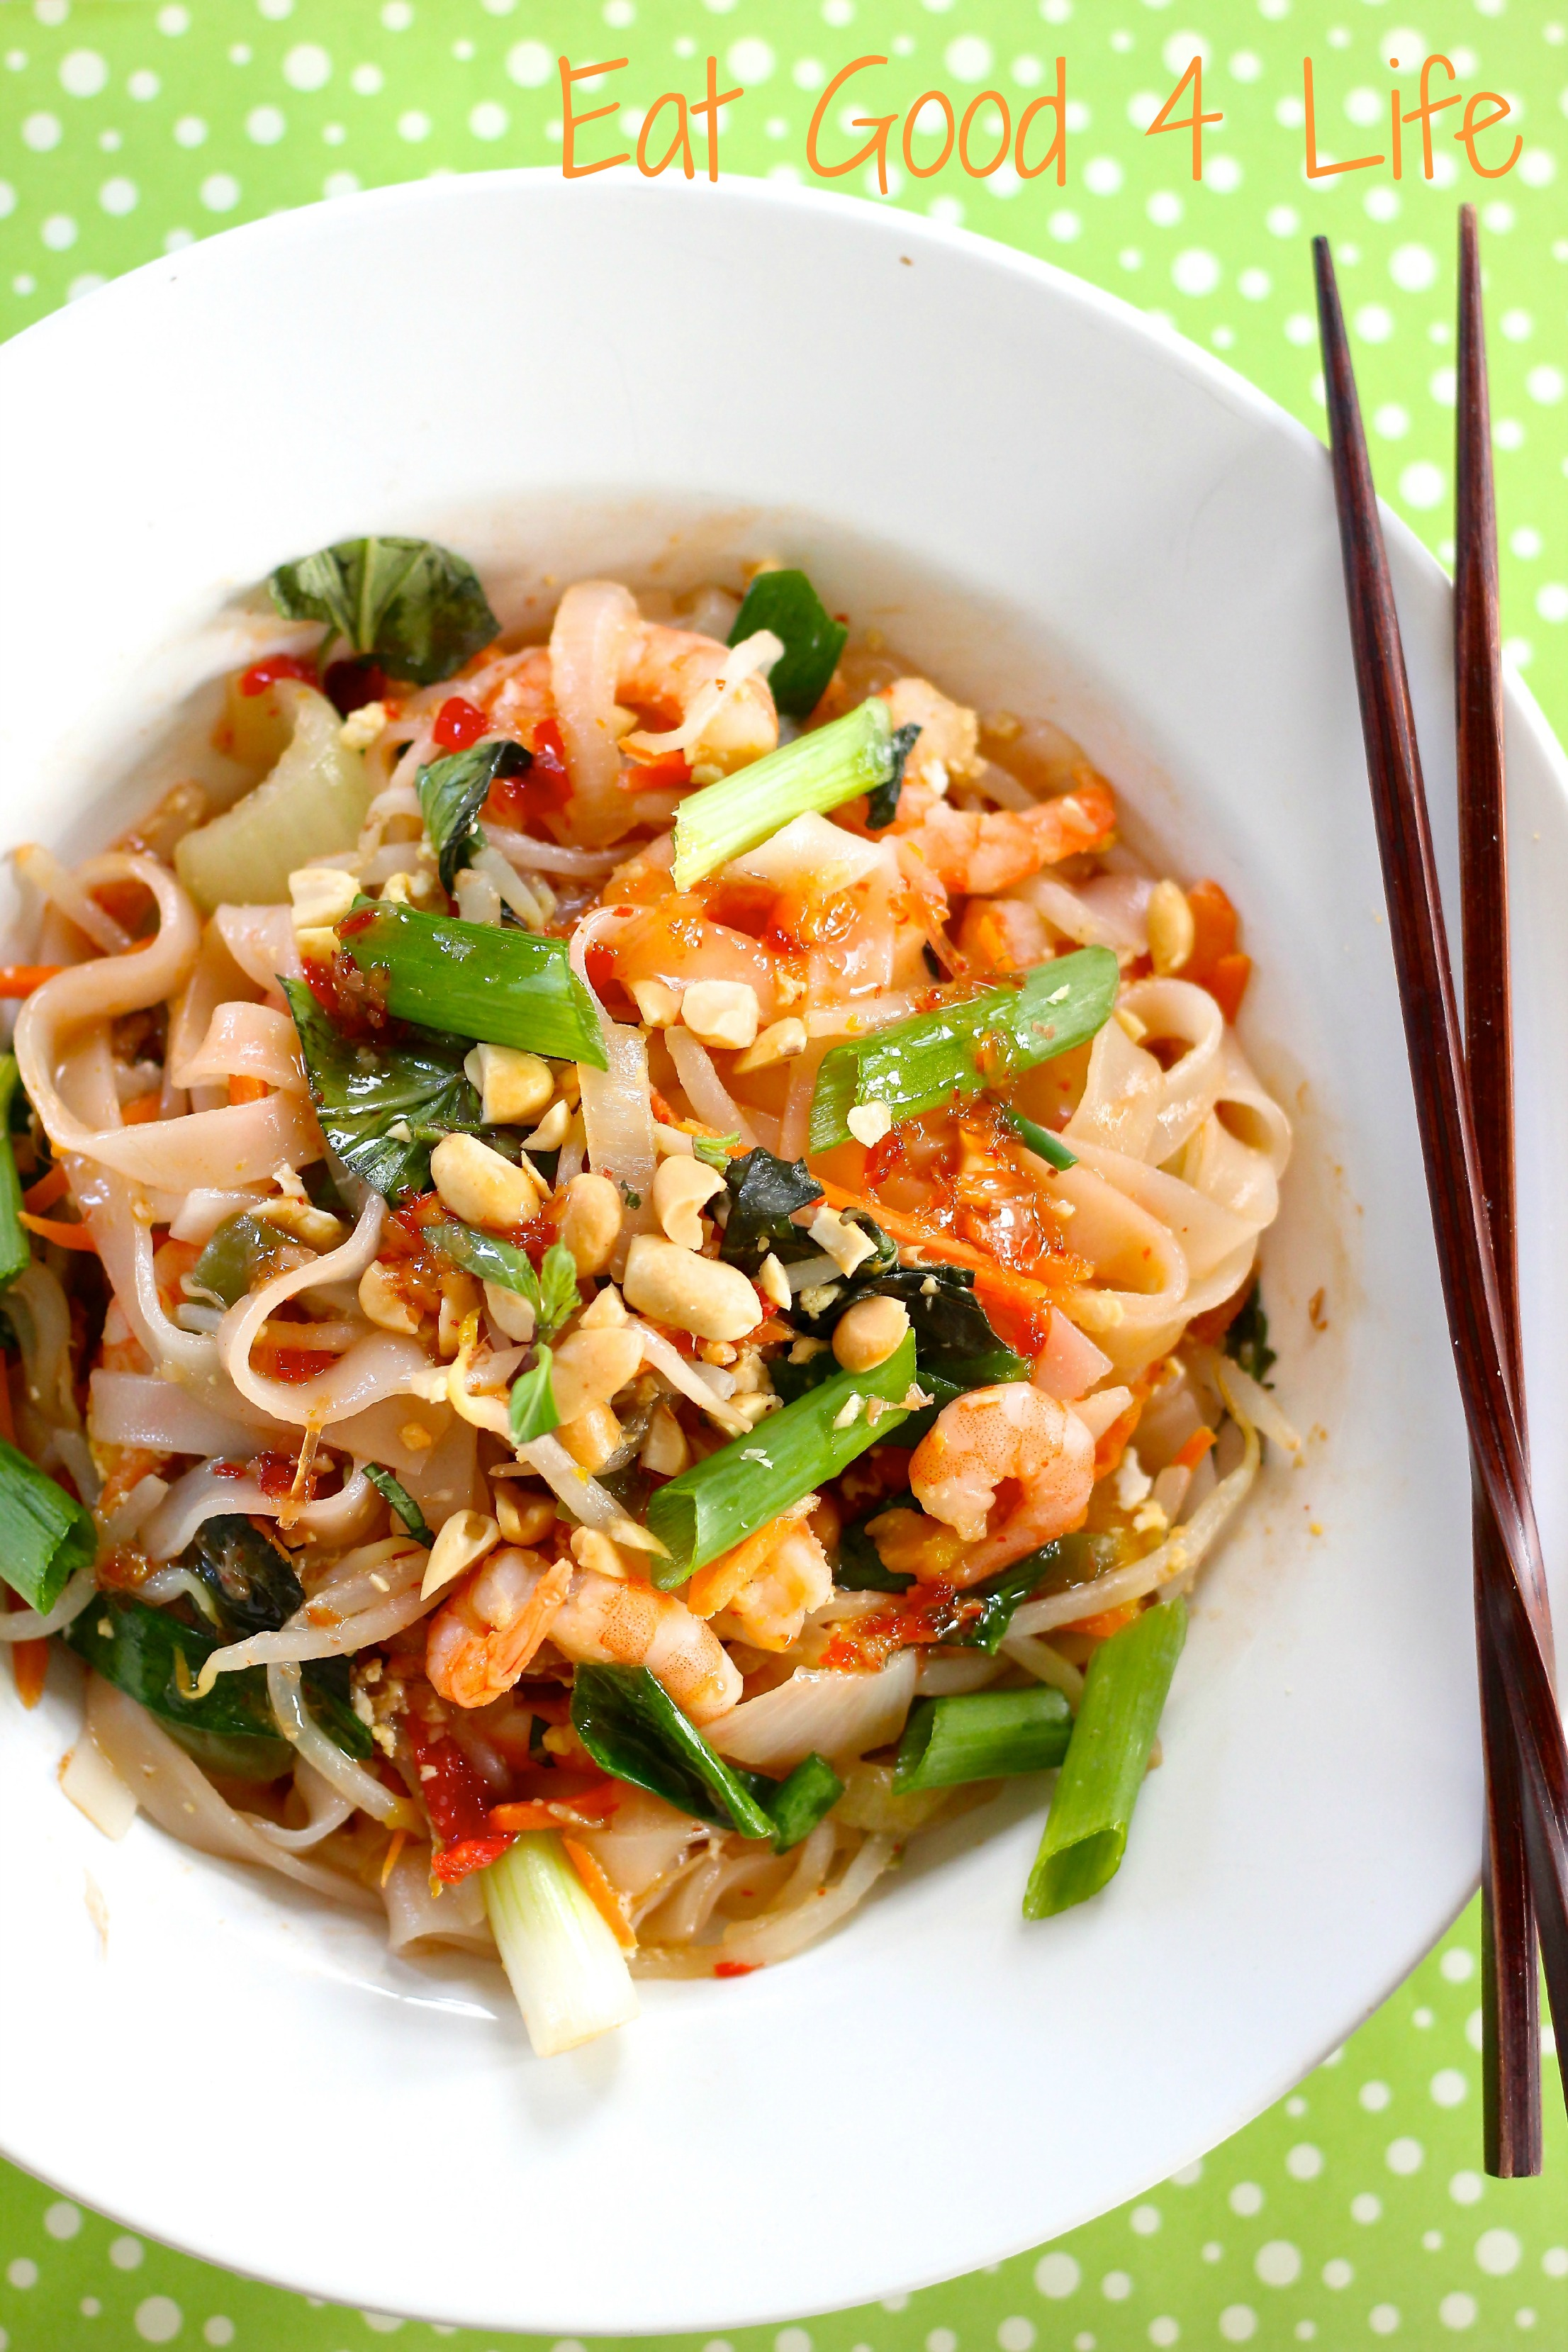 ... drunken noodles with shrimp can be made with just two simple Thai